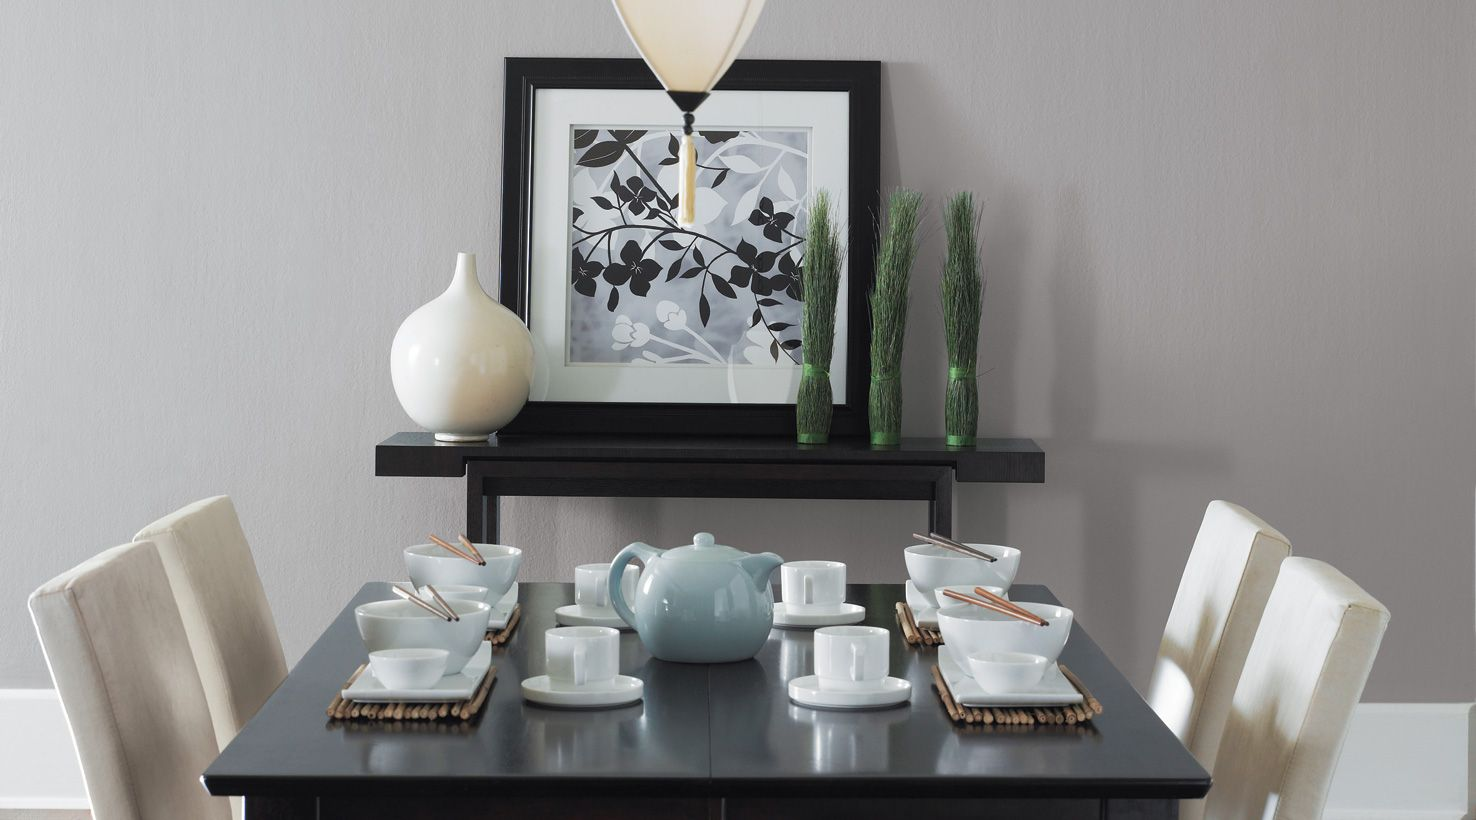 Sw img inspiration gallery interior rooms dining - Interior dining room paint colors ...